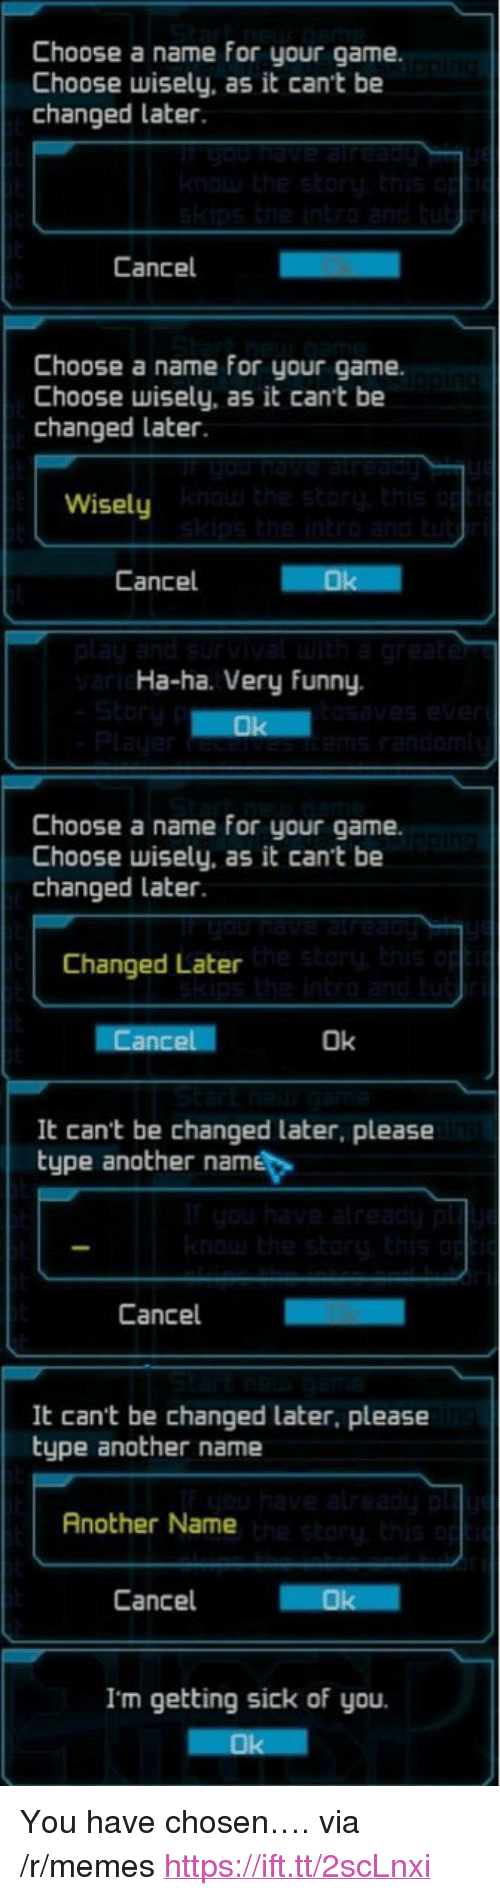 """Getting Sick: Choose a name for your game.  Choose wisely, as it cant be  changed later.  Cancel  Choose a name for your game.  Choose wisely, as it cant be  changed later  Wisely  Cancel  Ha-ha. Very Funny.  Choose a name for your game.  Choose wisely, as it cant be  changed later  Changed Later  Ok  It can't be changed later, please  type another name  Cancel  It cant be changed later, please  type another name  Another Name  Cancel  Ok  I'm getting sick of you. <p>You have chosen&hellip;. via /r/memes <a href=""""https://ift.tt/2scLnxi"""">https://ift.tt/2scLnxi</a></p>"""